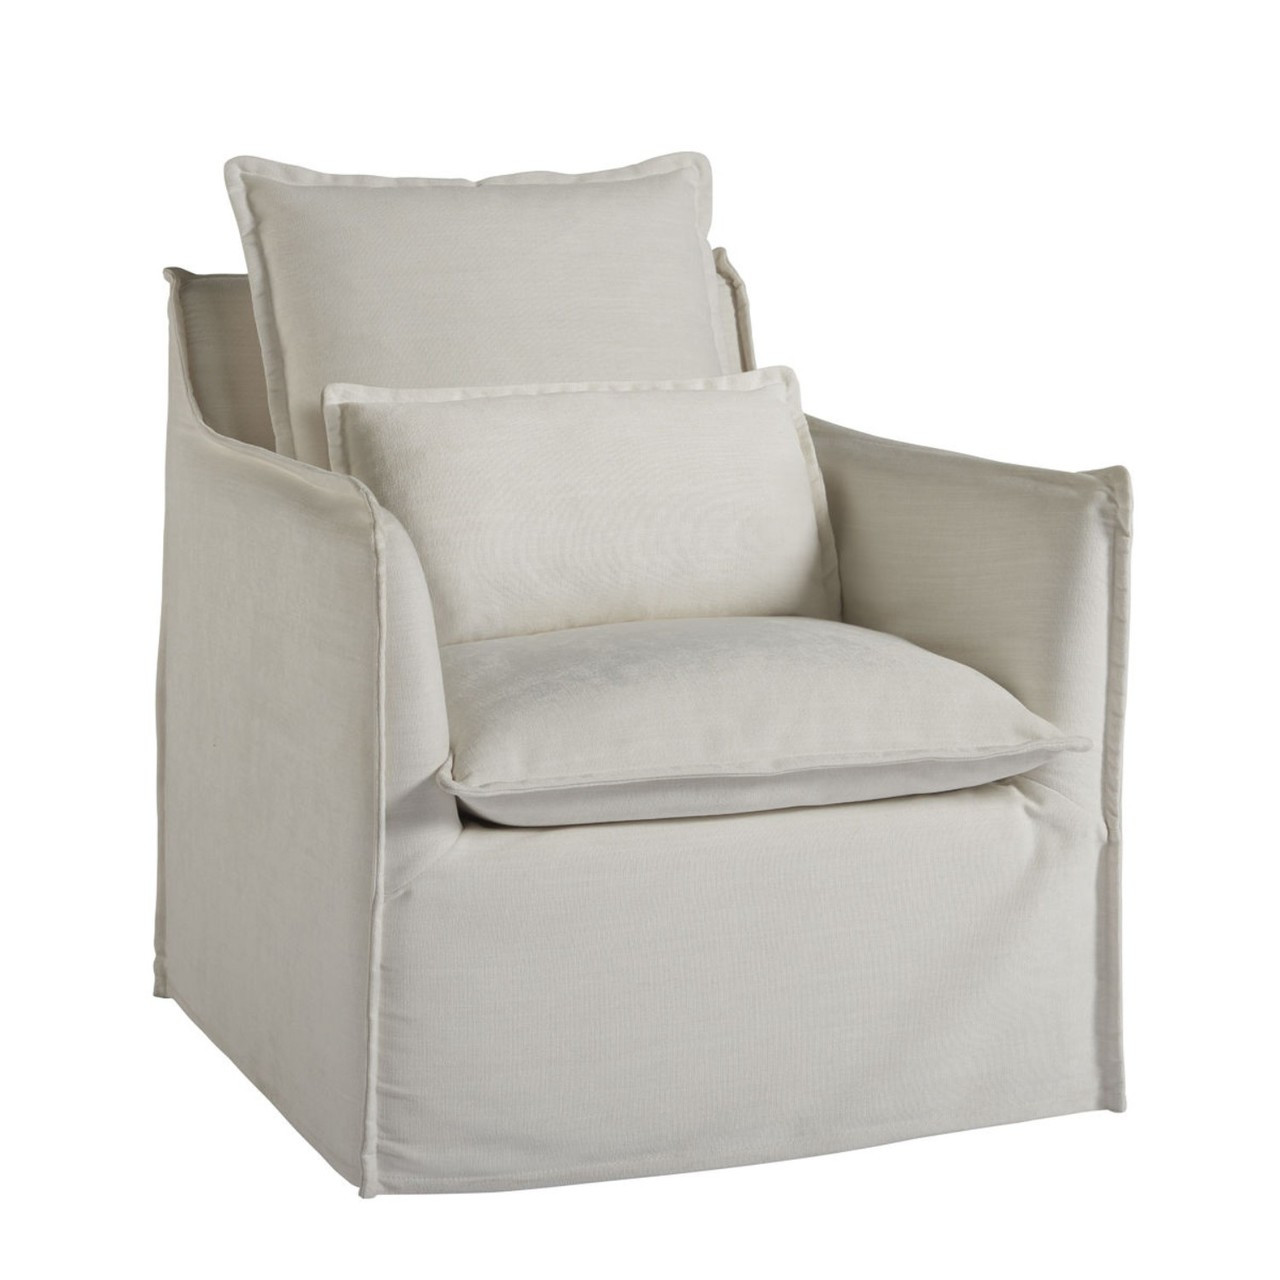 Upholstered Swivel Chairs Coastal Living Siesta Key Slipcovered Swivel Chair